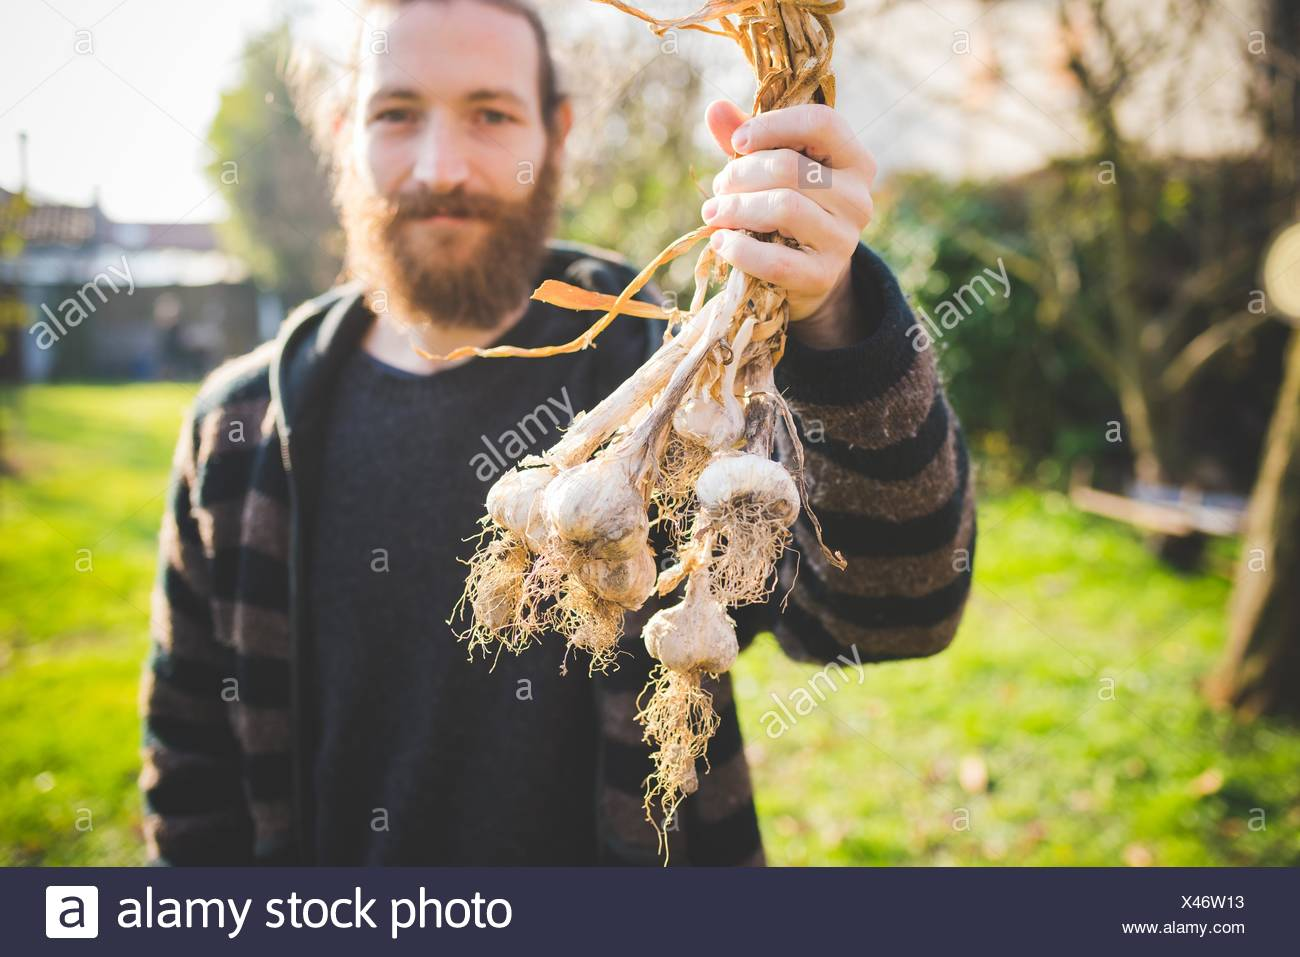 Bearded mid adult man in garden holding freshly picked garlic bulbs looking at camera smiling - Stock Image